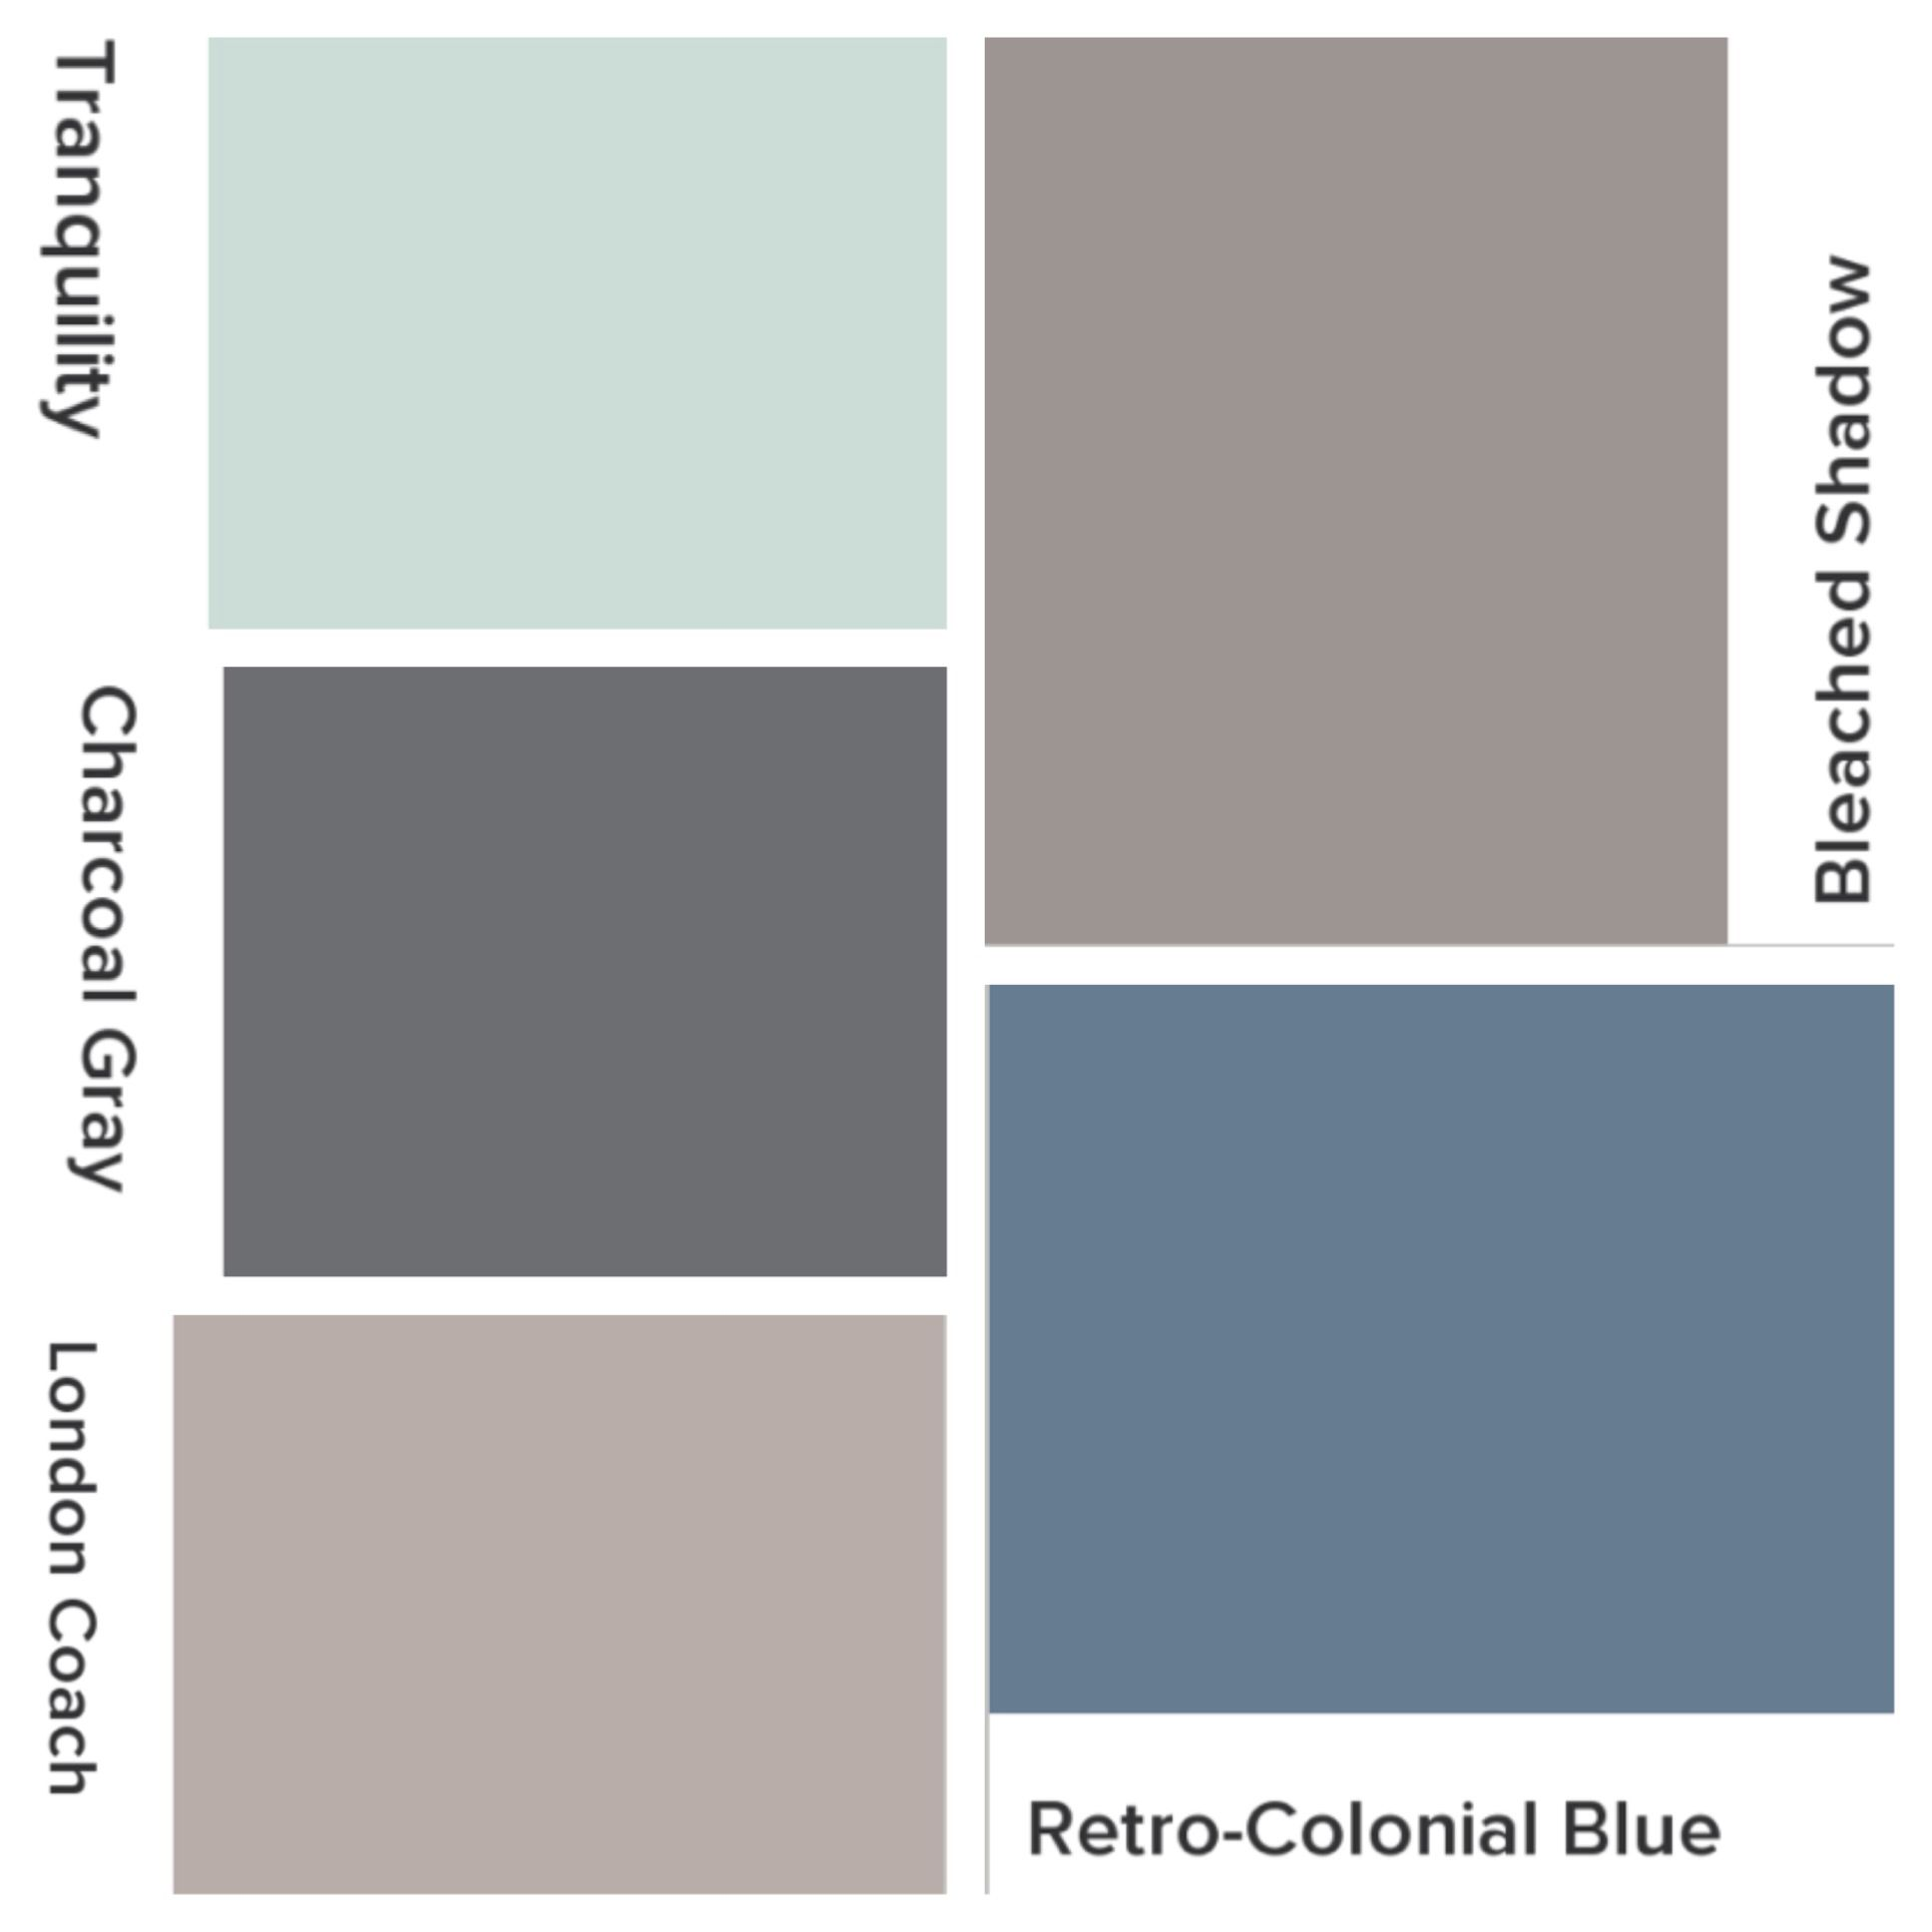 Whole House Color Scheme Valspar Lowes Bleached Shadow Kitchen Retro Colonial Blue